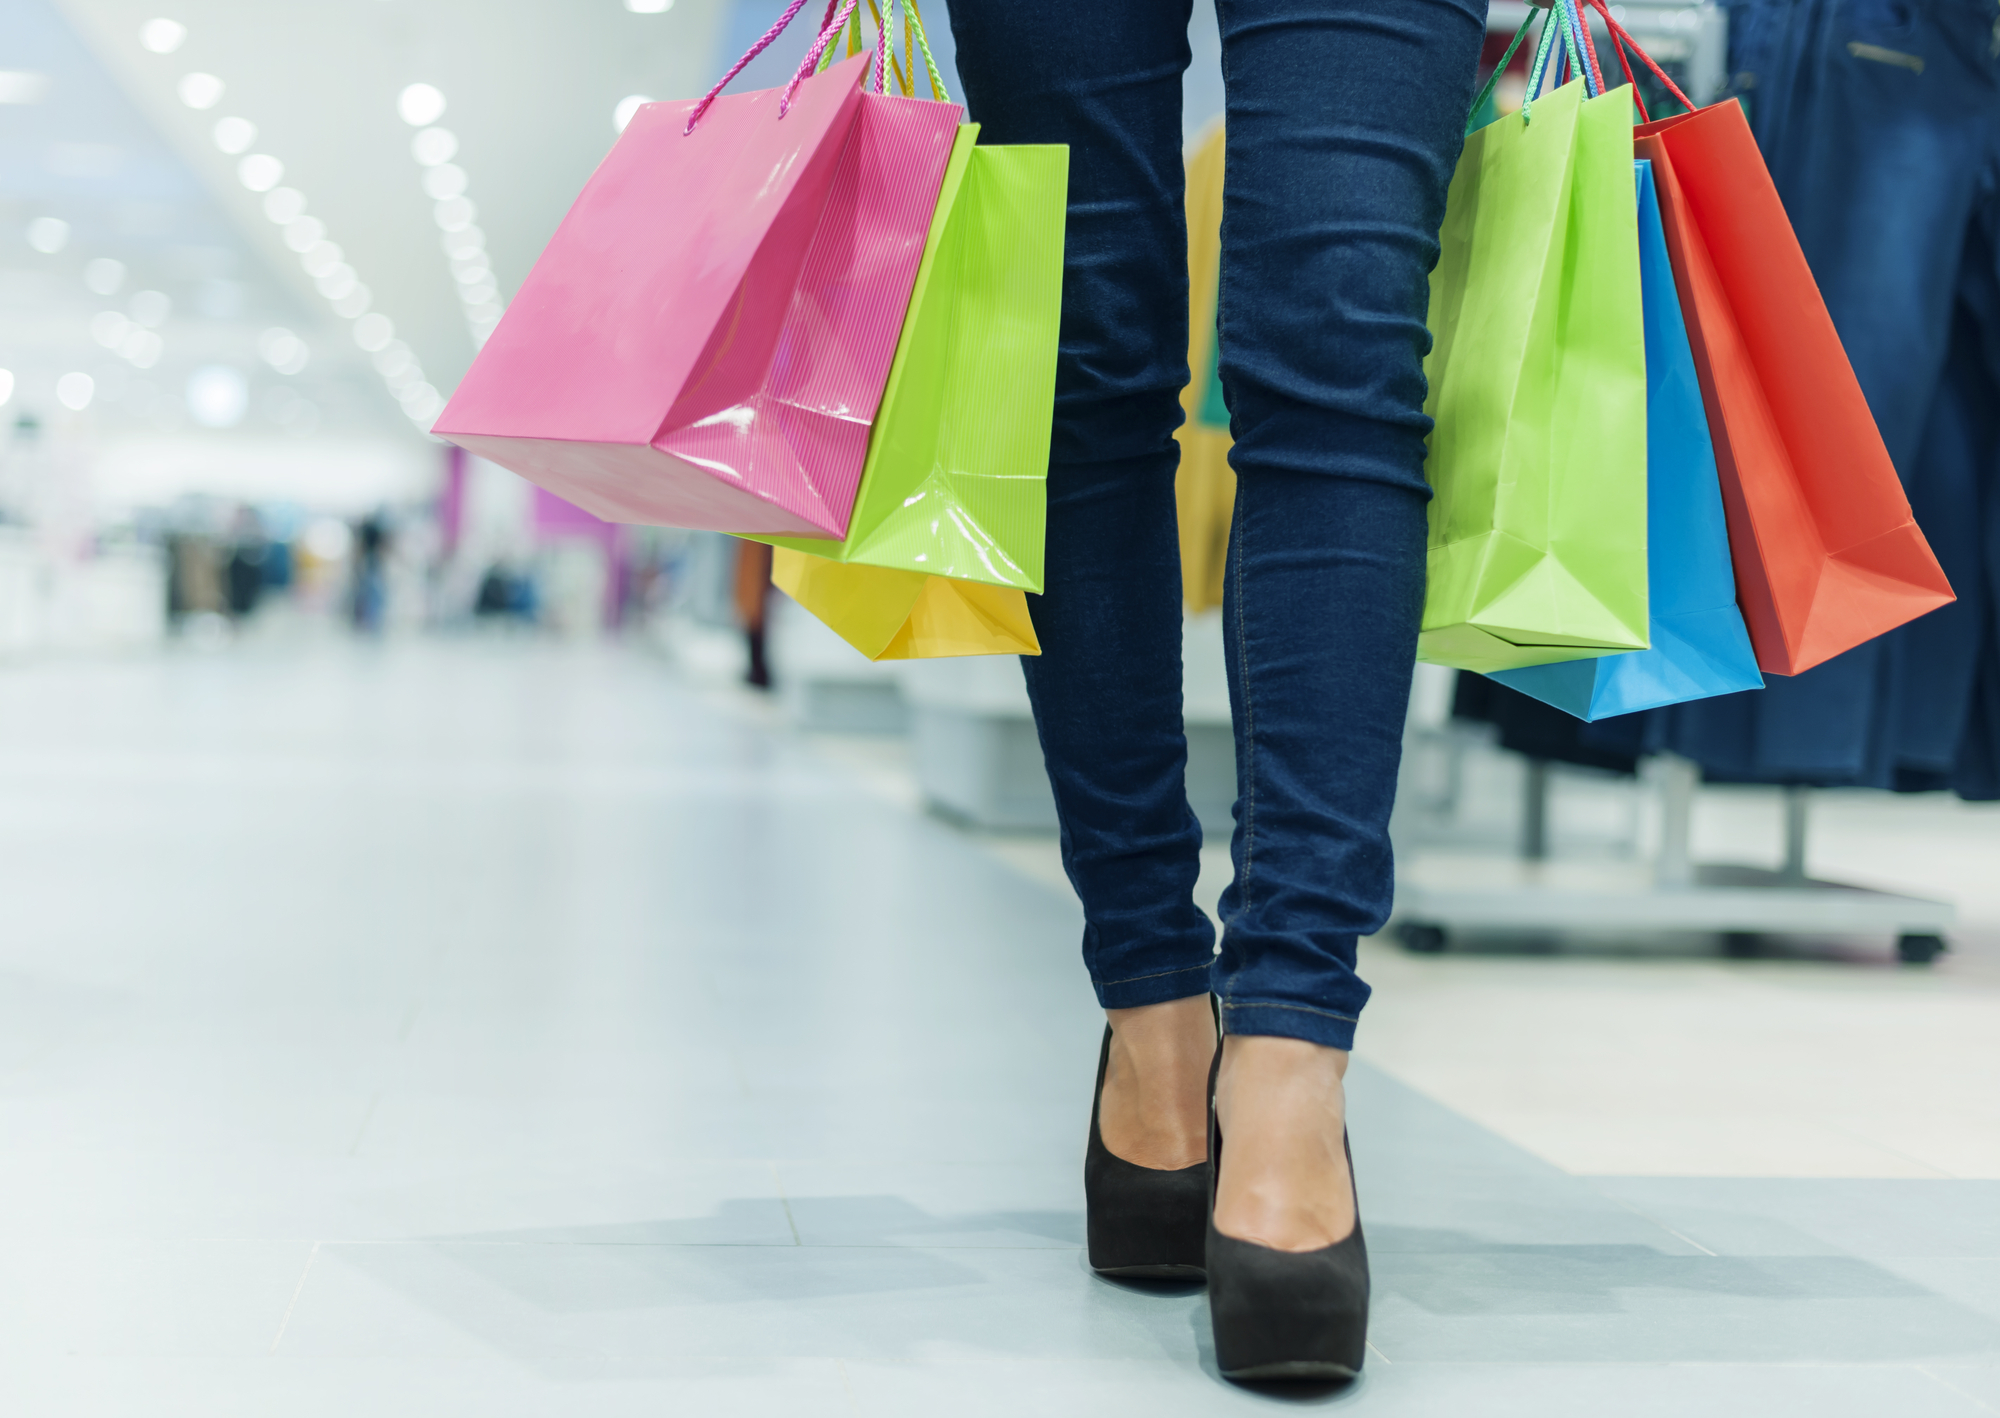 What Will You Do After Slip & Fall Accident In Christmas Shopping?